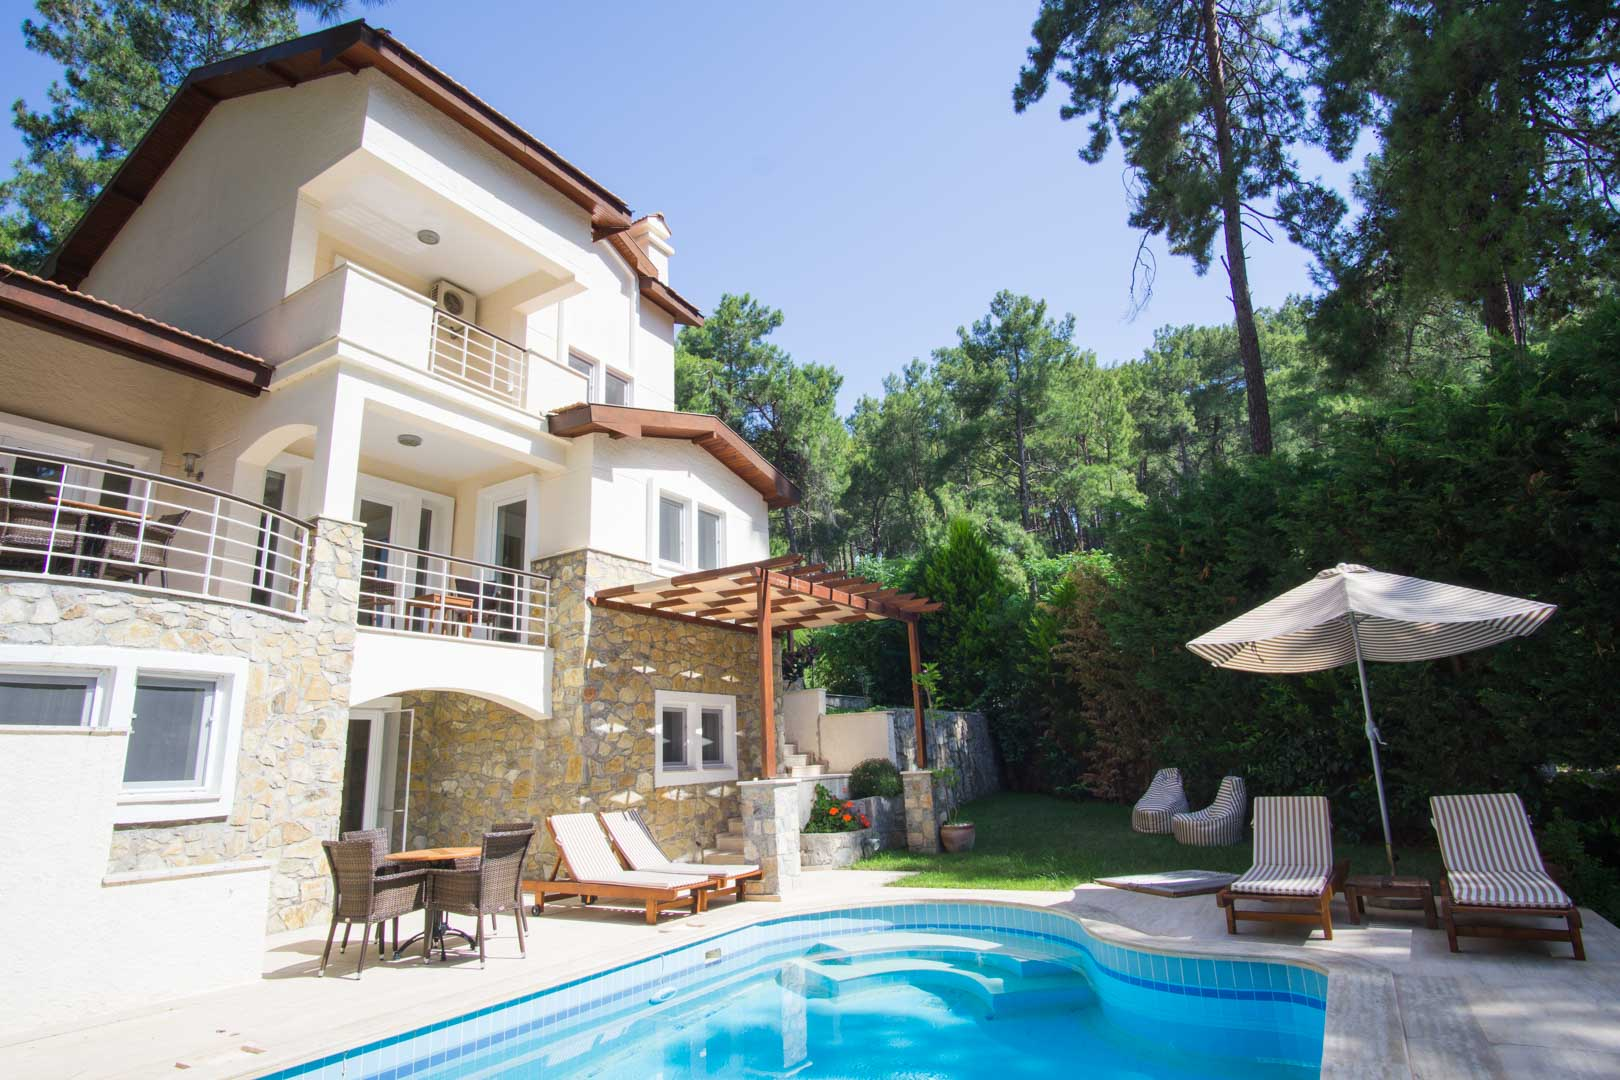 Sleep Up To 10 Delightful Villa For Rent In Forest